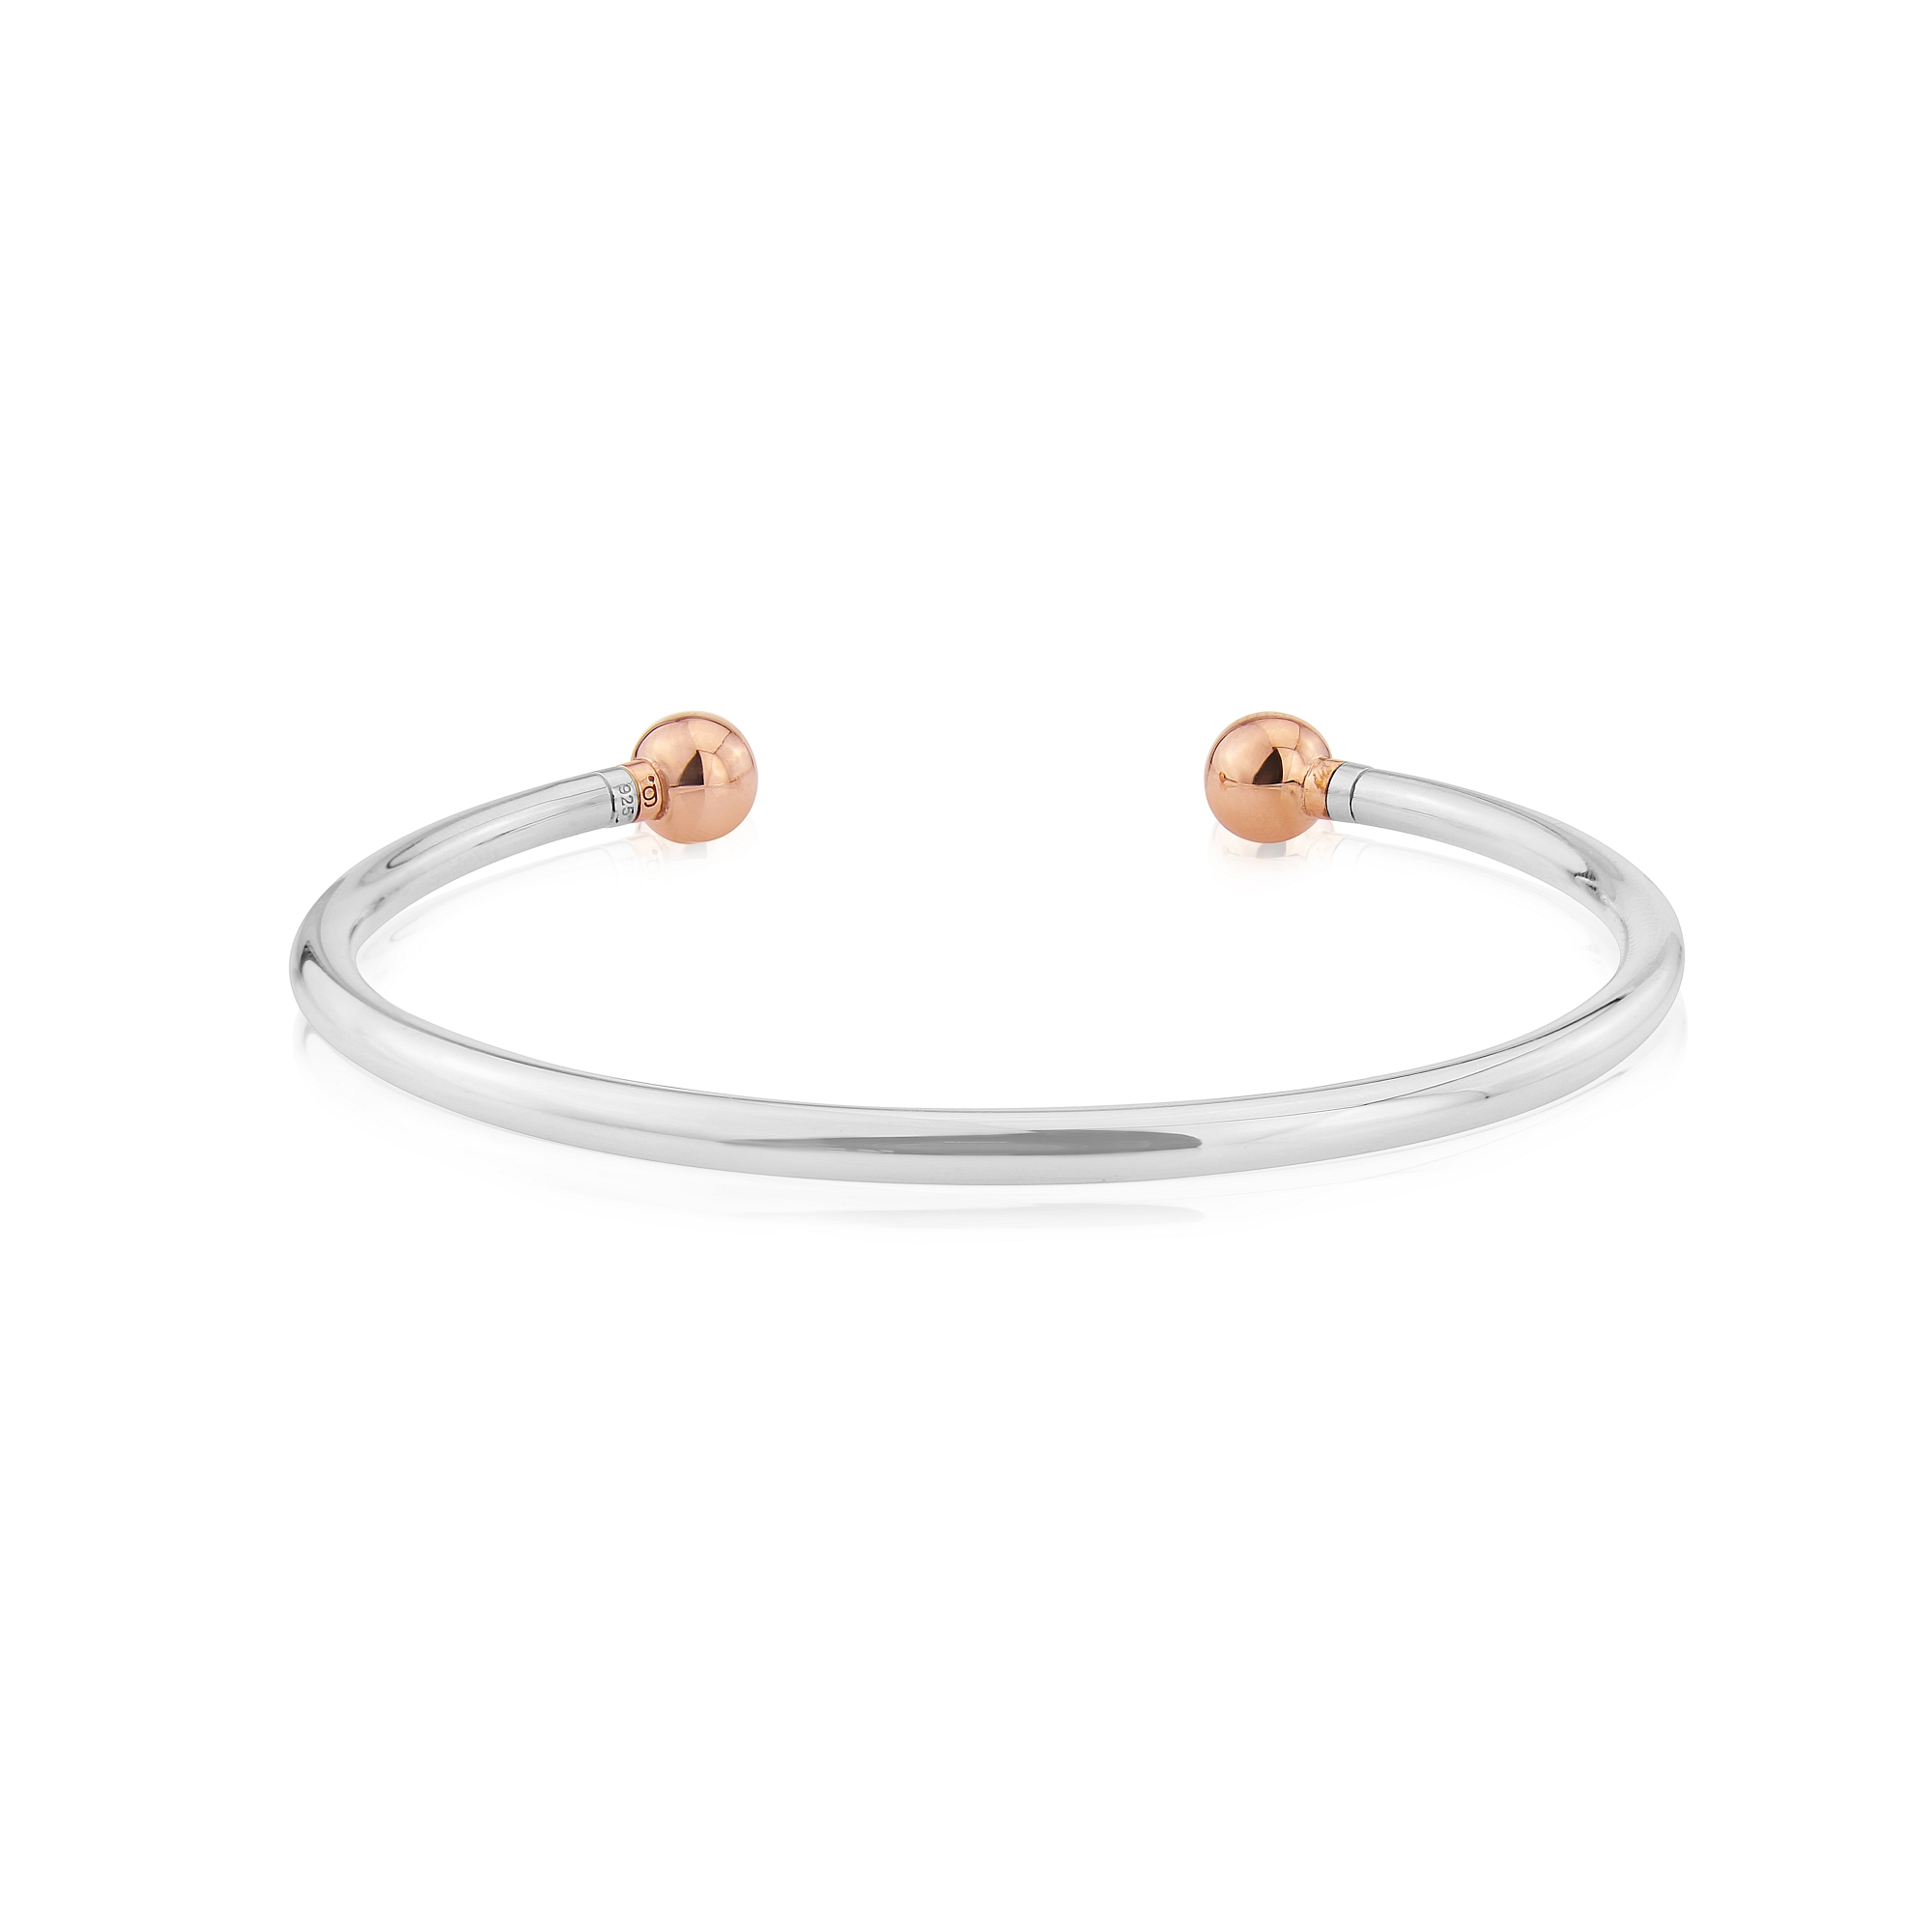 rose gold ended charm bangle